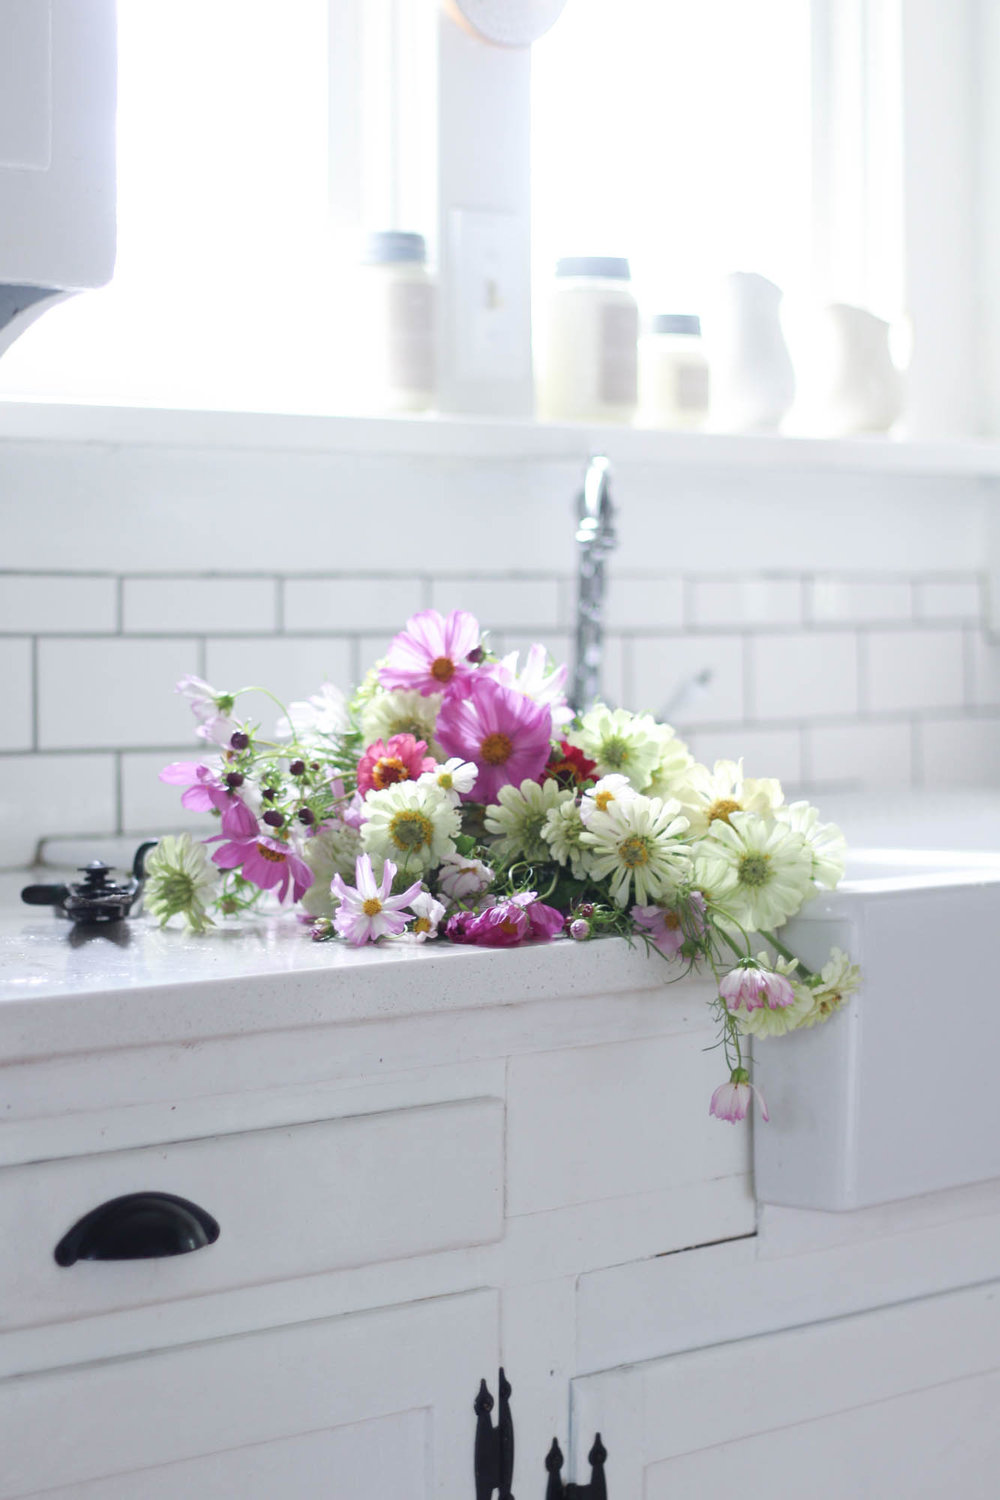 Tips for making beautiful cut flower arrangements from the garden - farmhouse sink with flowers #farmsink #cutflowergarden #gardening